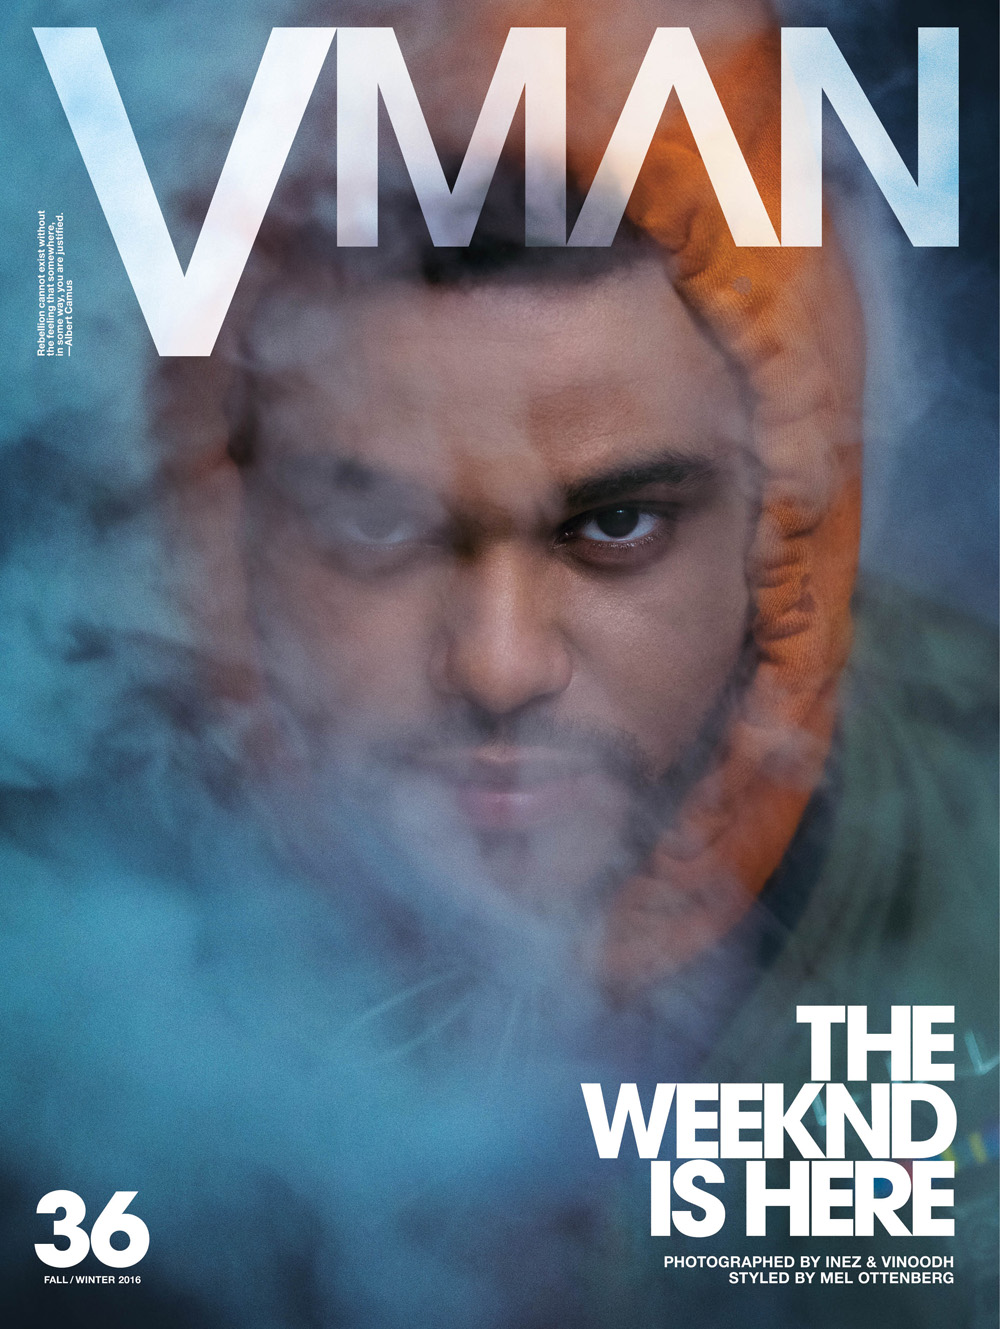 VMan #36 Fall/Winter 2016 : The Weeknd by Inez & Vinoodh